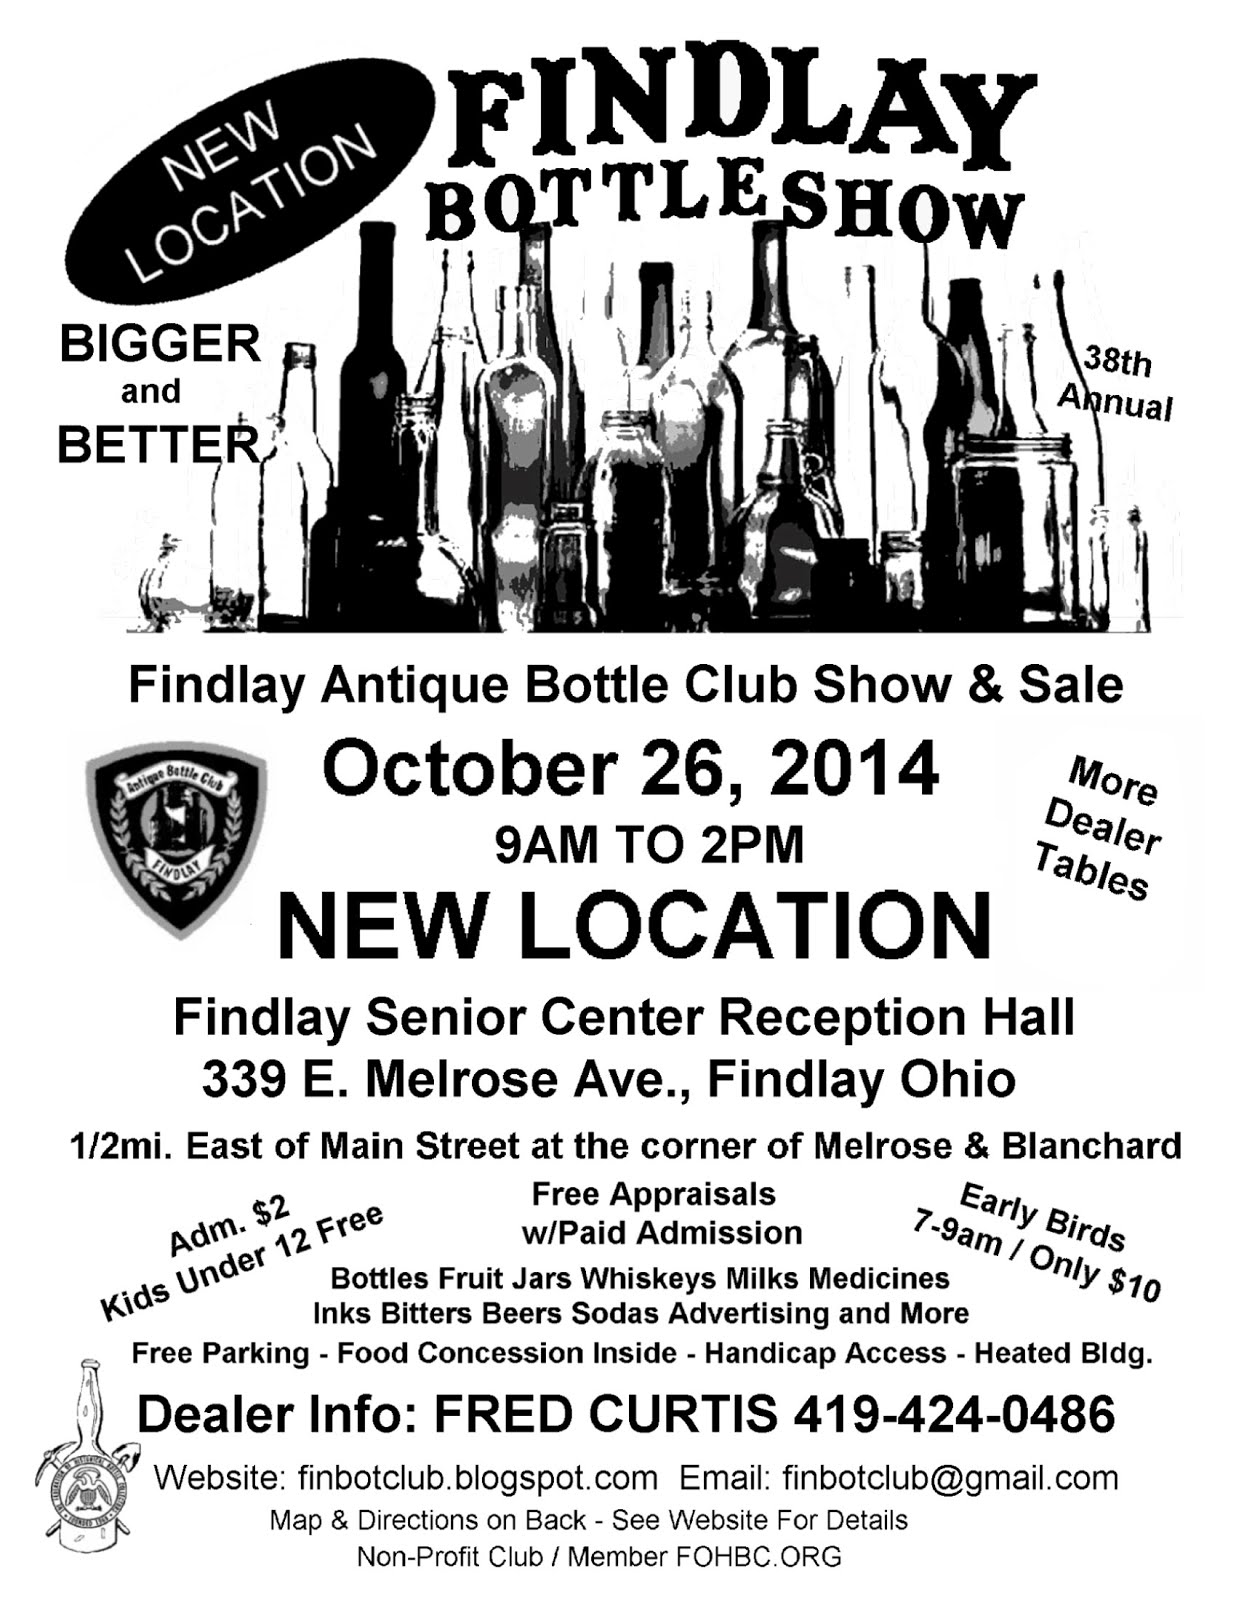 2014 Findlay Bottle Show ~ NEW LOCATION